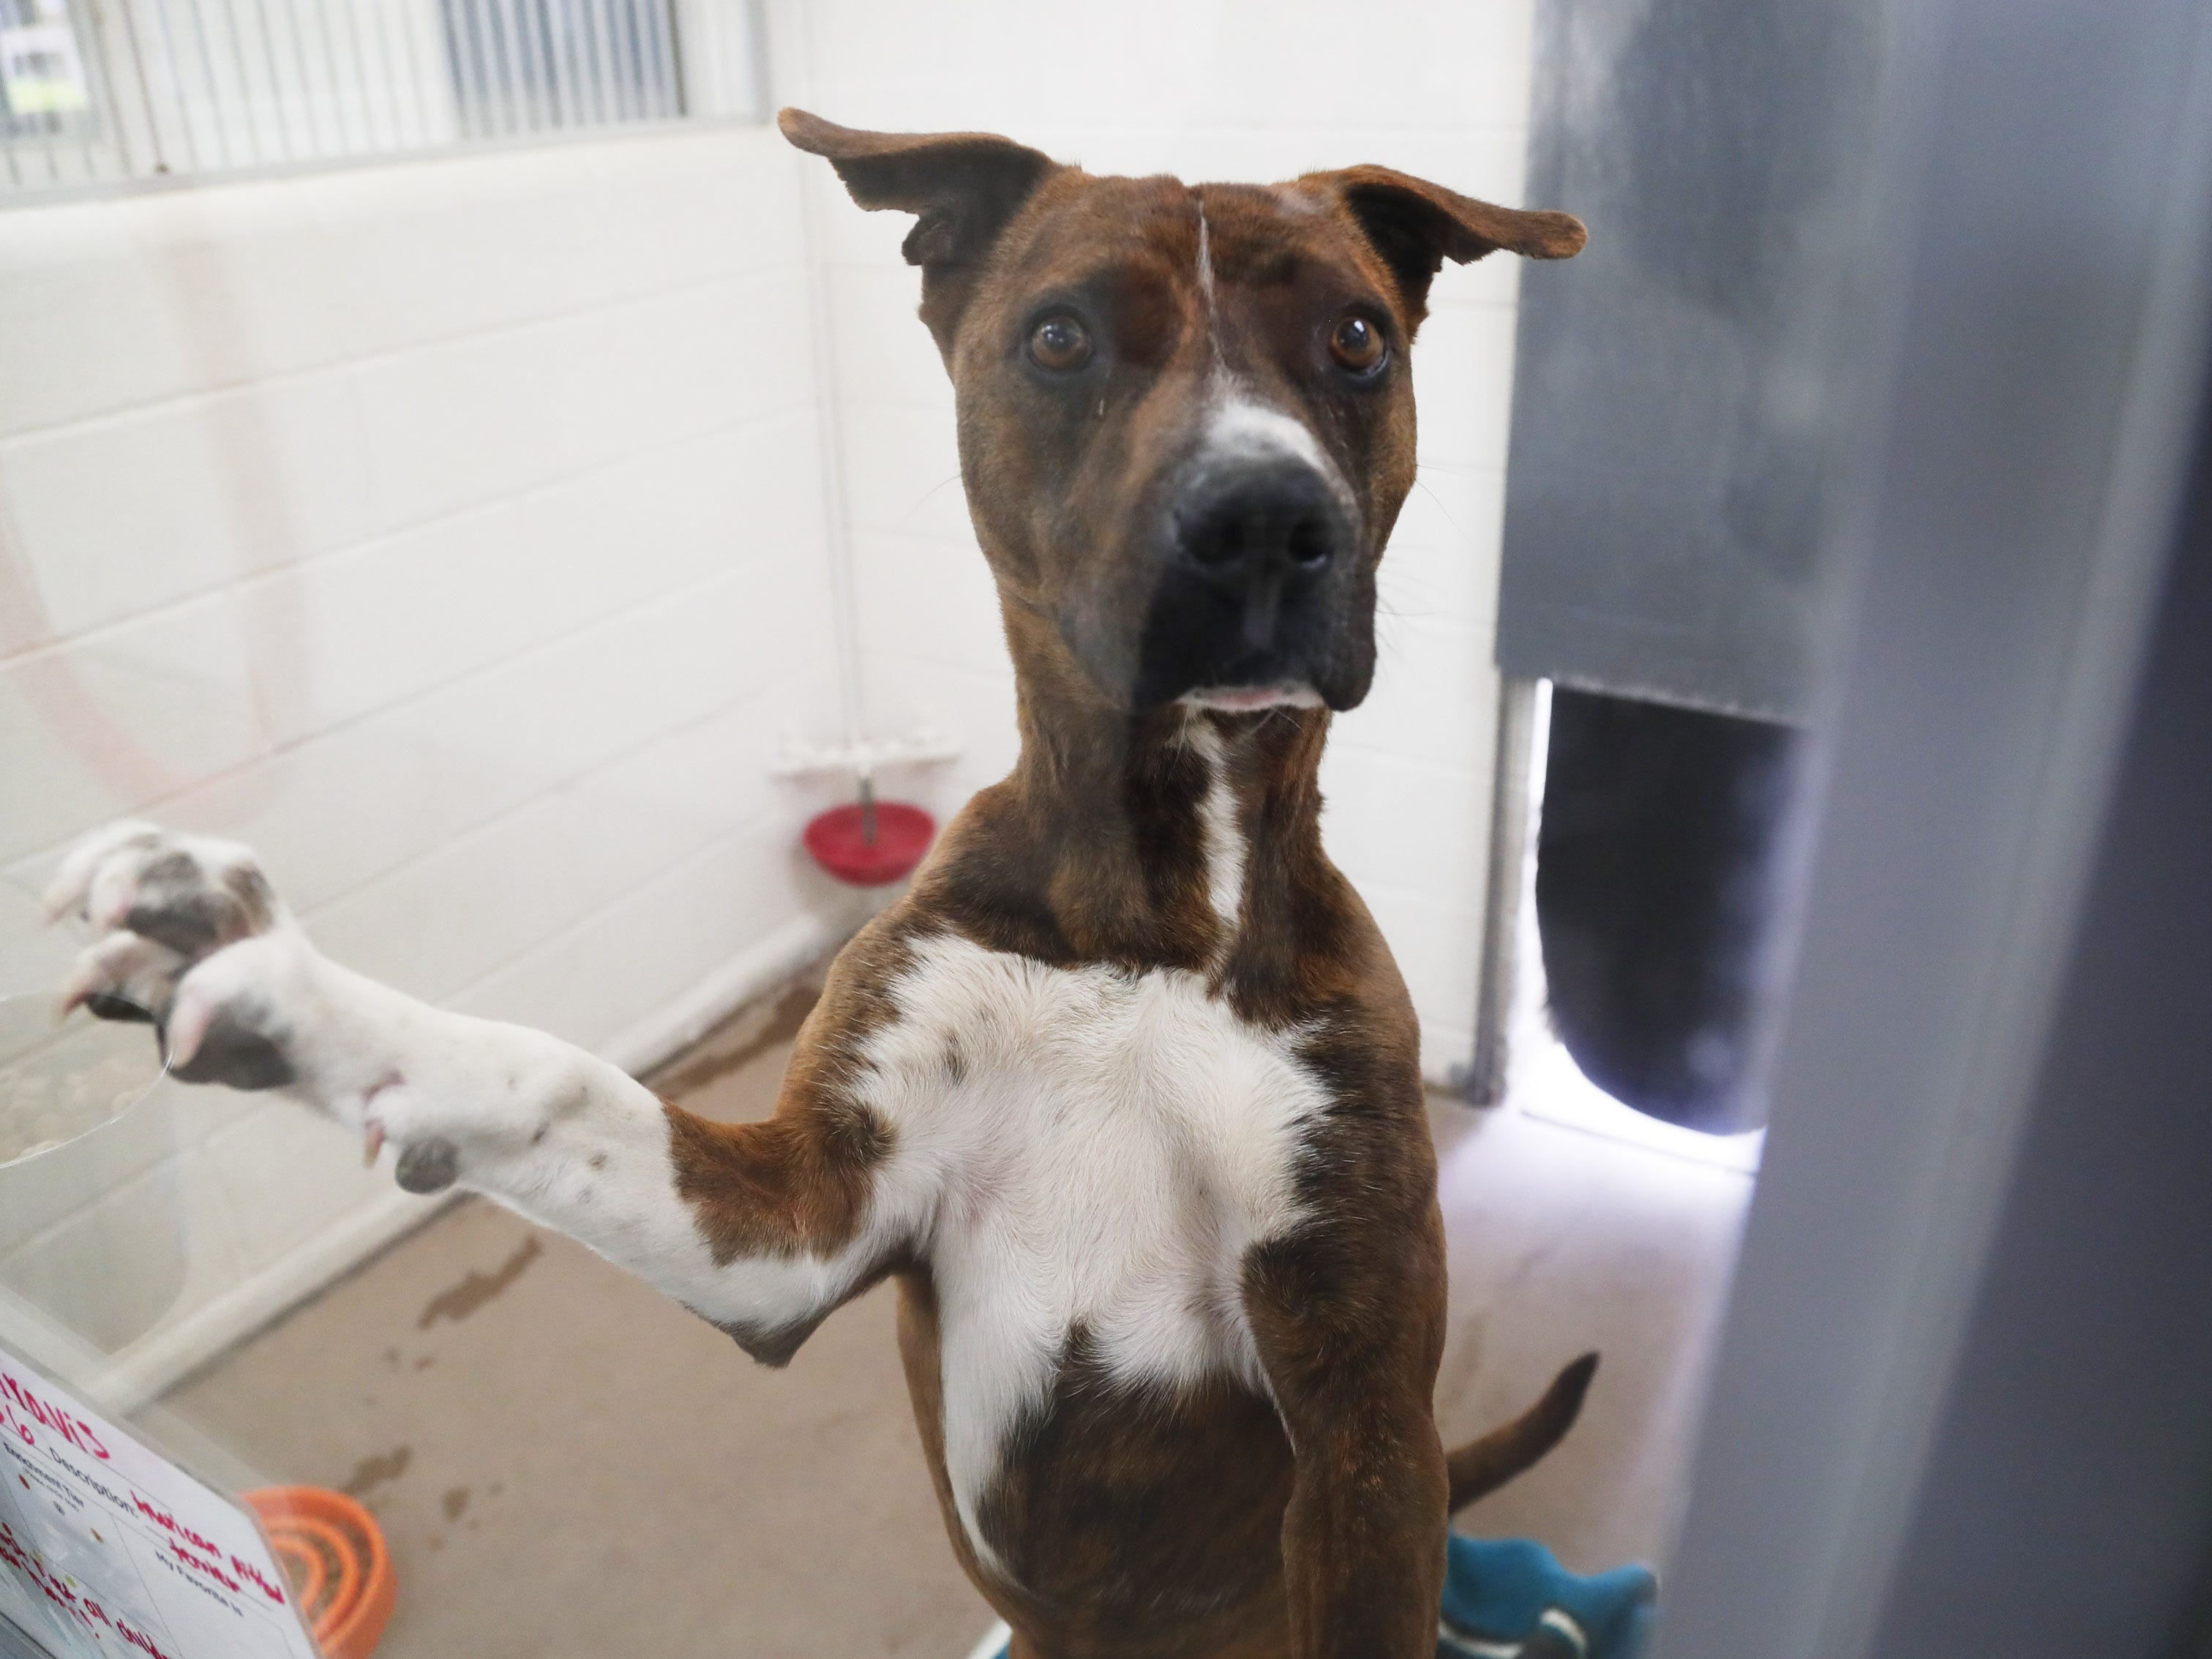 Travis, an American Terrier, waits to be adopted at the Arizona Humane Society in Phoenix on April 1, 2019. More than 8,000 dogs and cats have been surrendered in Maricopa County since the start of the year.